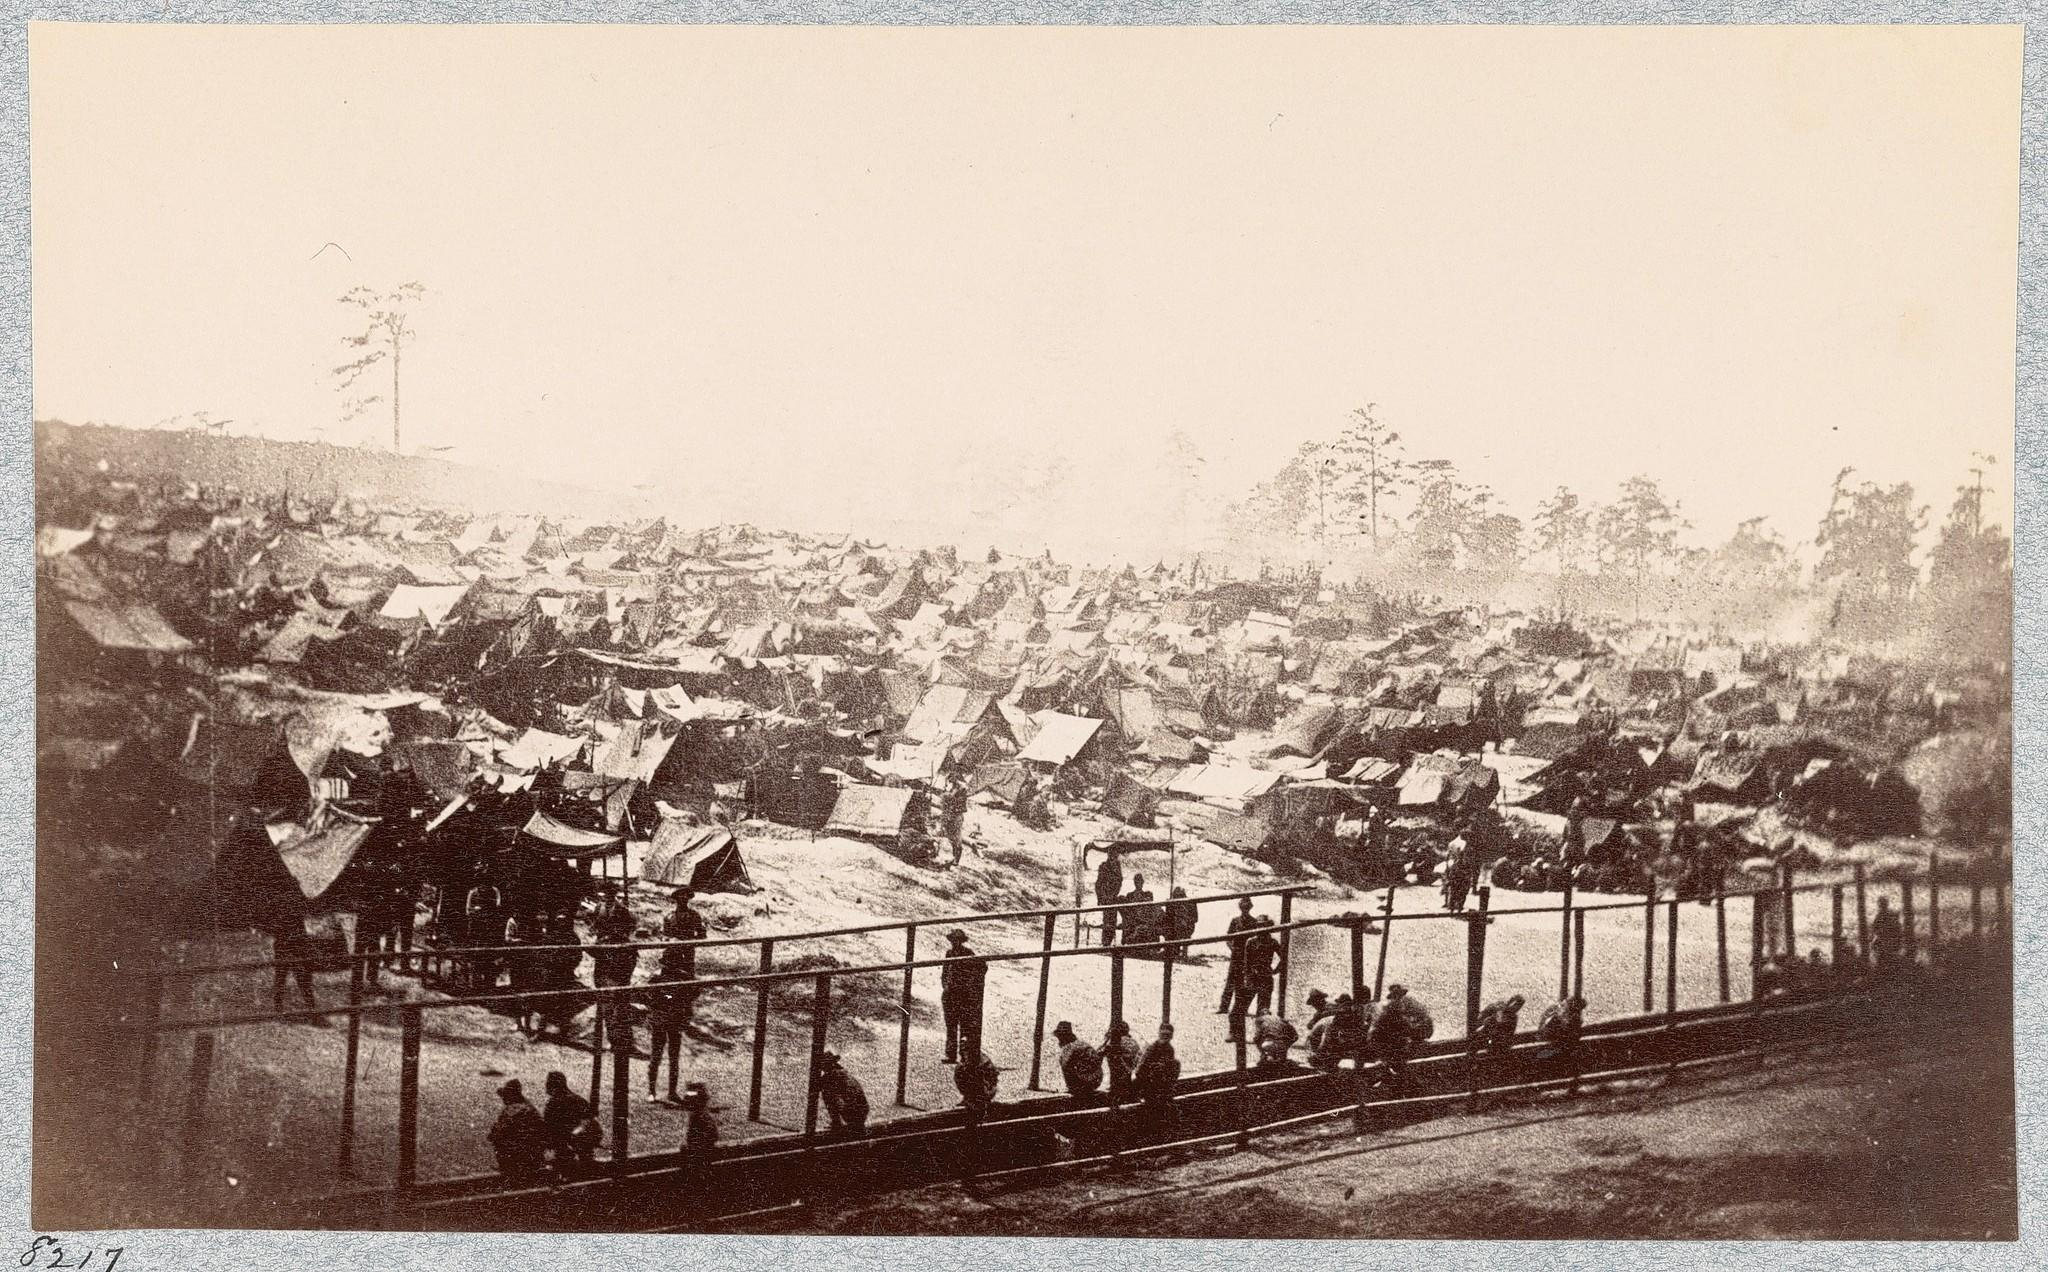 This view shows prisoners and the tents that served as their shelters at Andersonville prison.